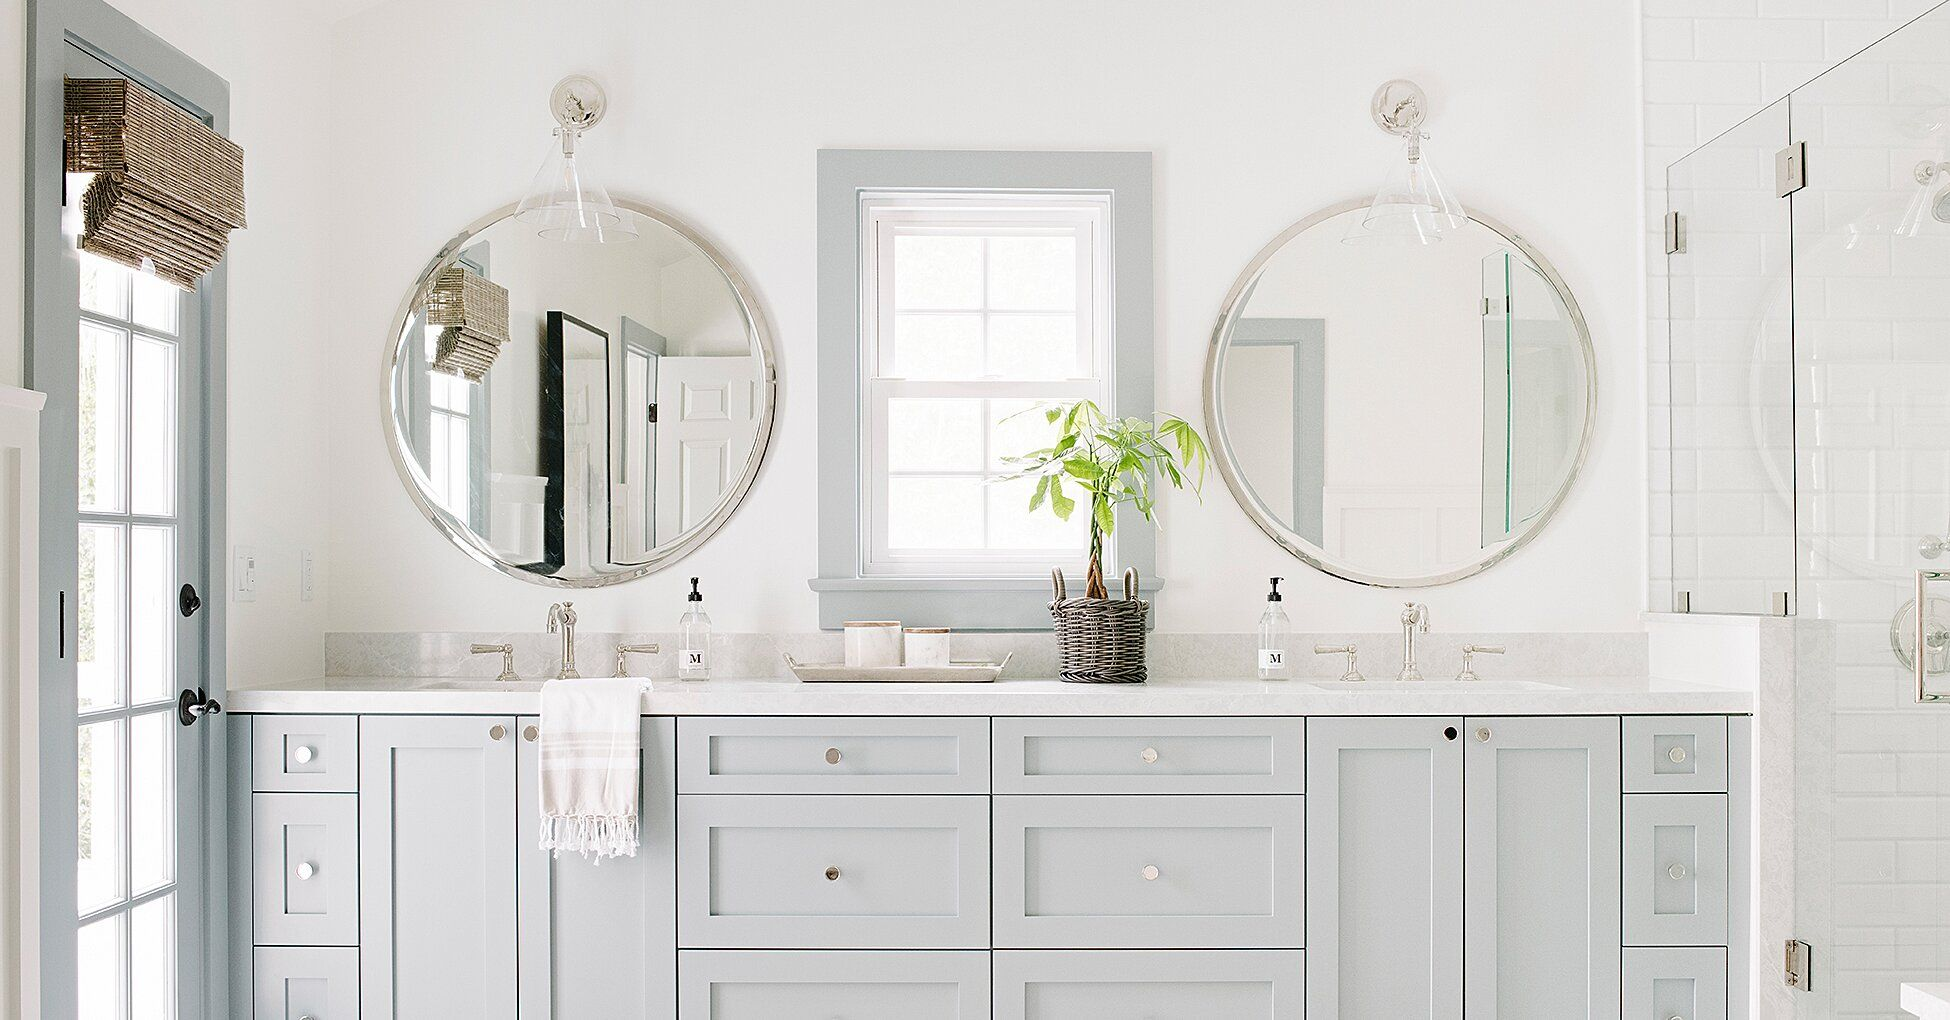 These Are The Most Popular Bathroom Paint Colors For 2020 In 2020 Popular Bathroom Colors Bathroom Paint Colors Painting Bathroom